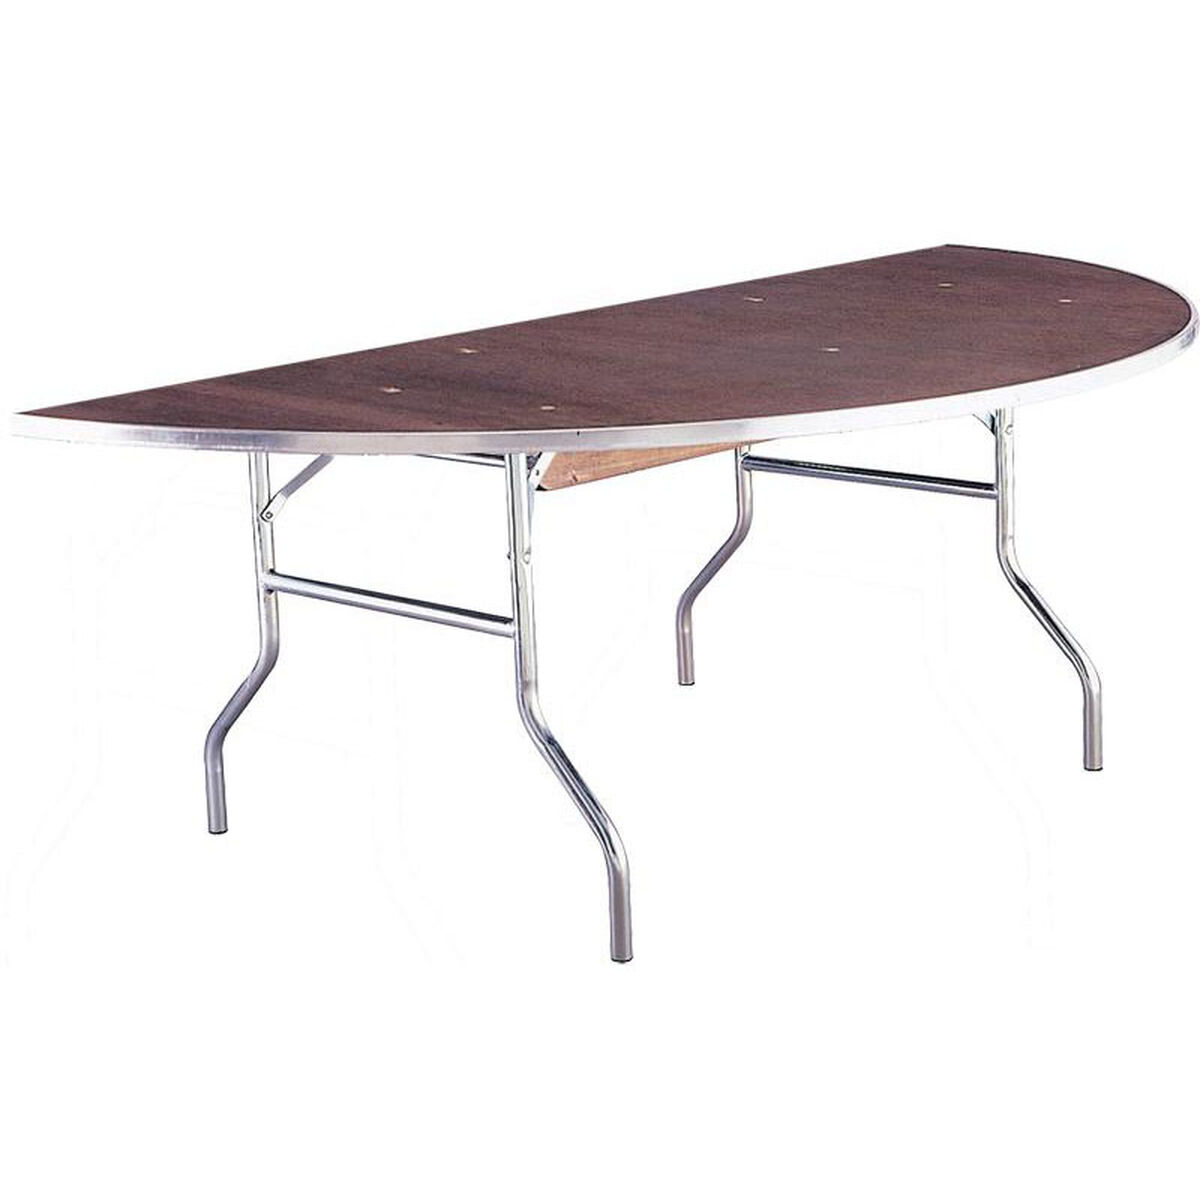 Maywood furniture standard series half round banquet table for Furniture sites